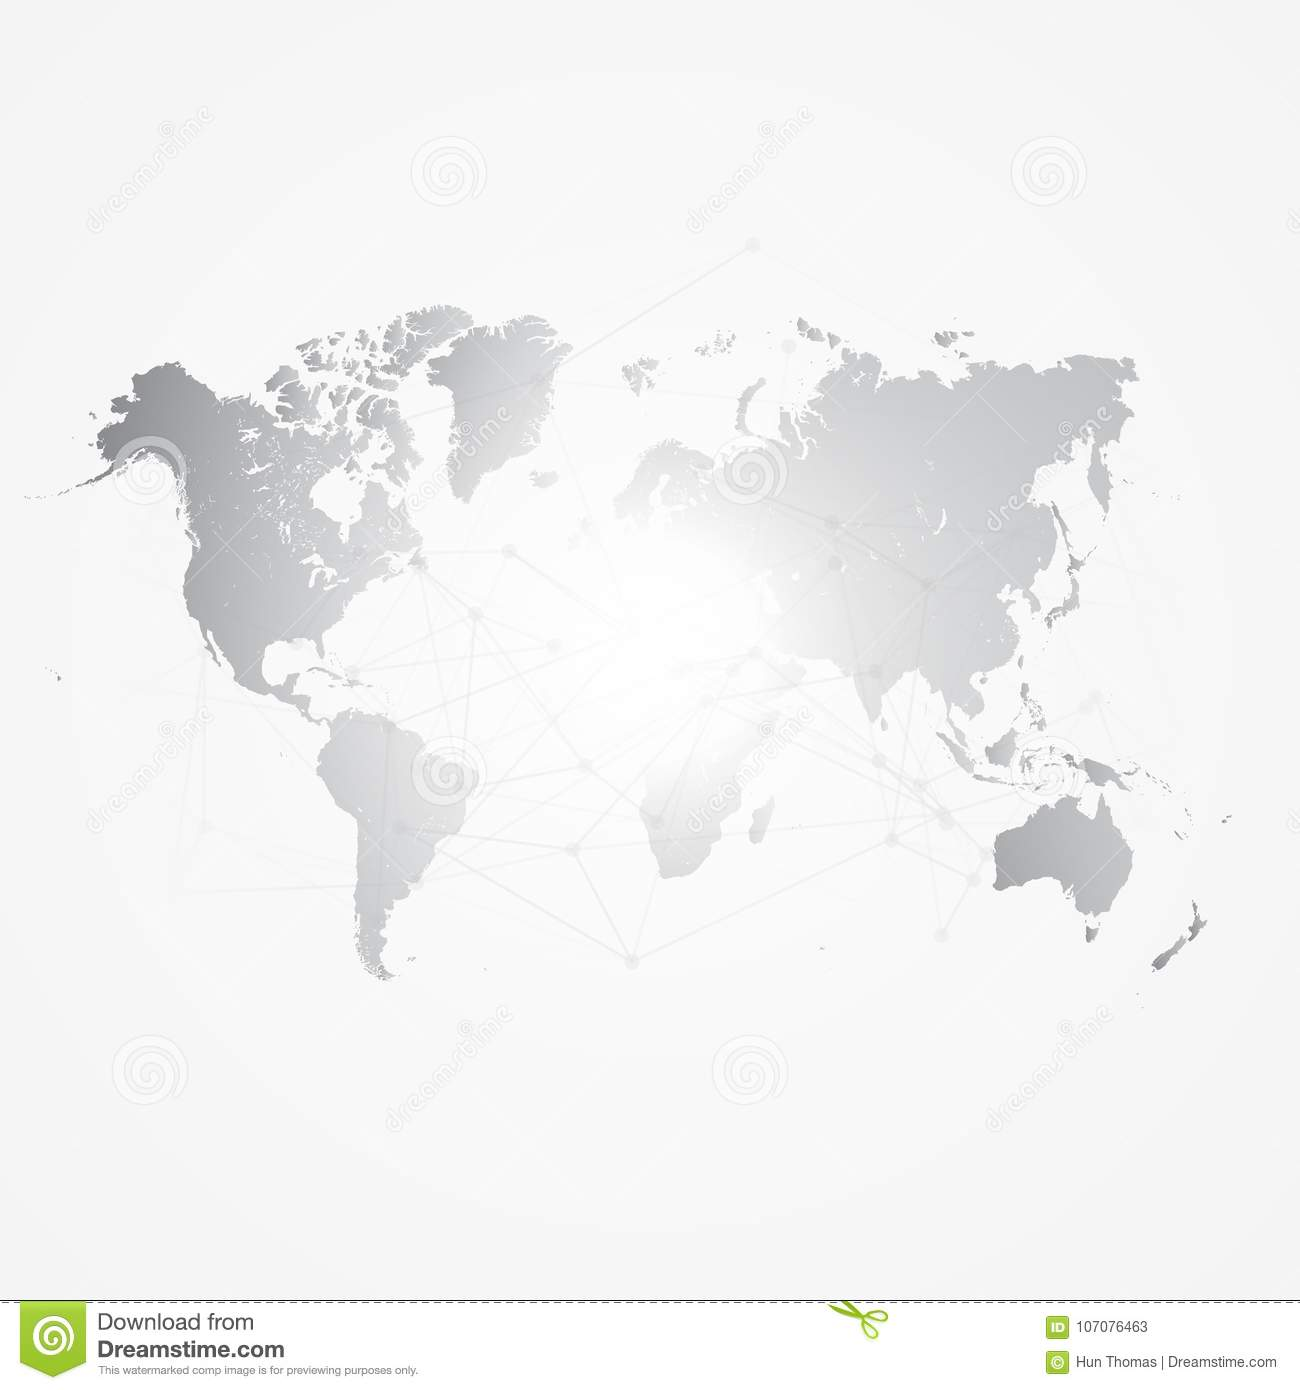 World map silhouette with connection grid vector illustration royalty free illustration download world map silhouette with connection gumiabroncs Image collections